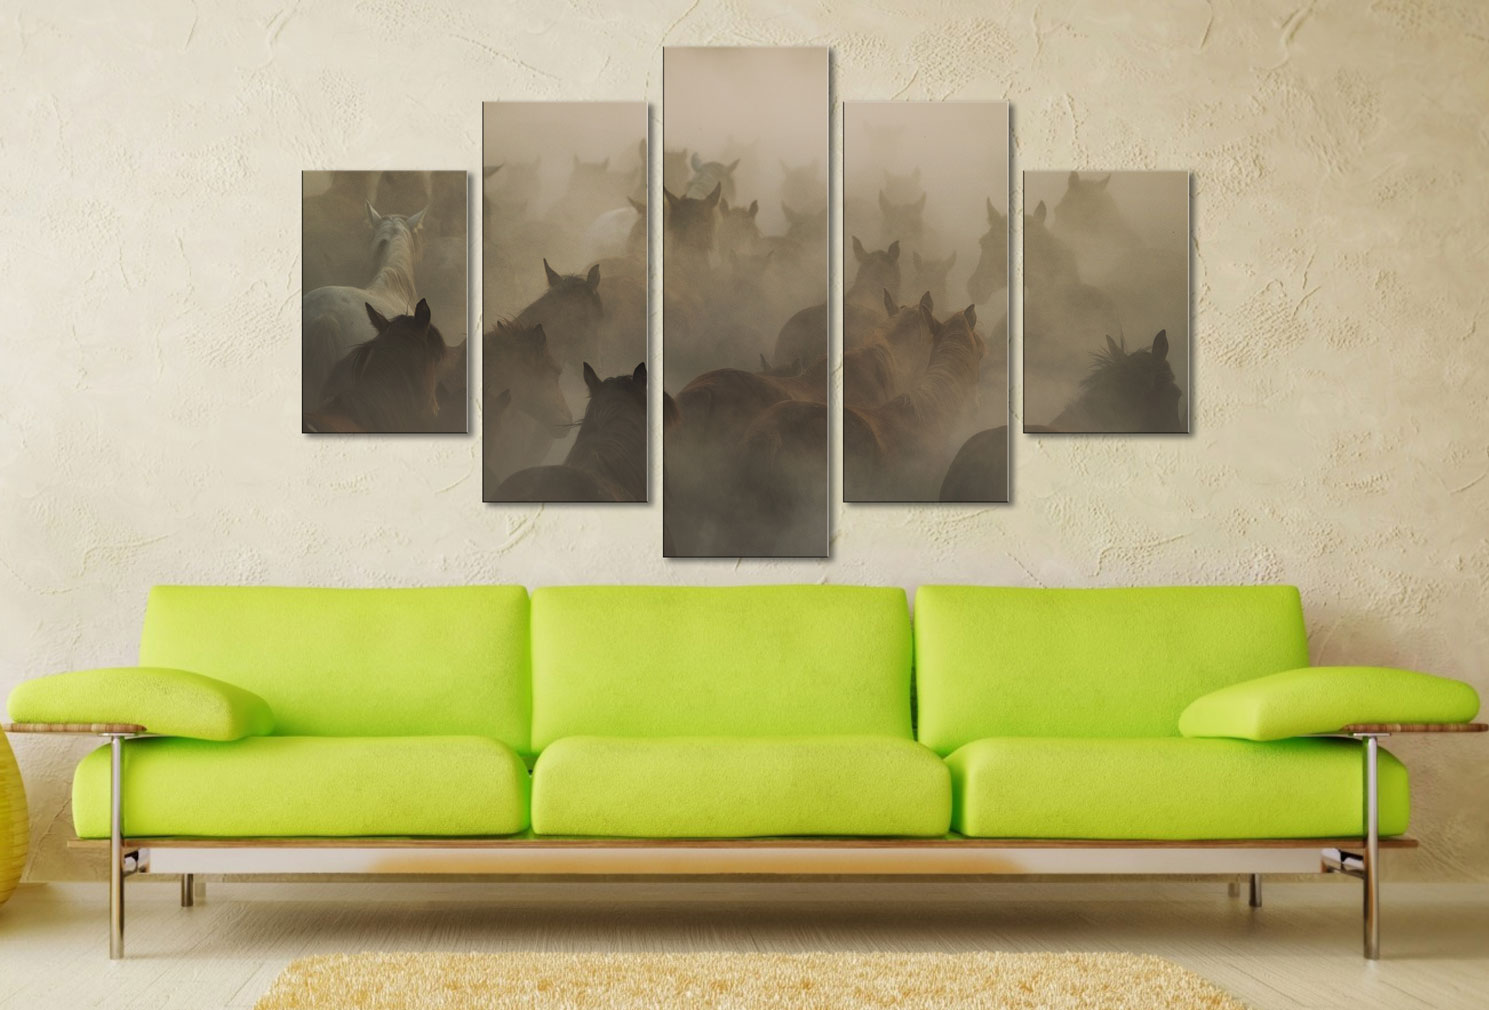 Canvas Printing Perth In Dust Five Panel Canvas Photo Printing Waneroo Perth